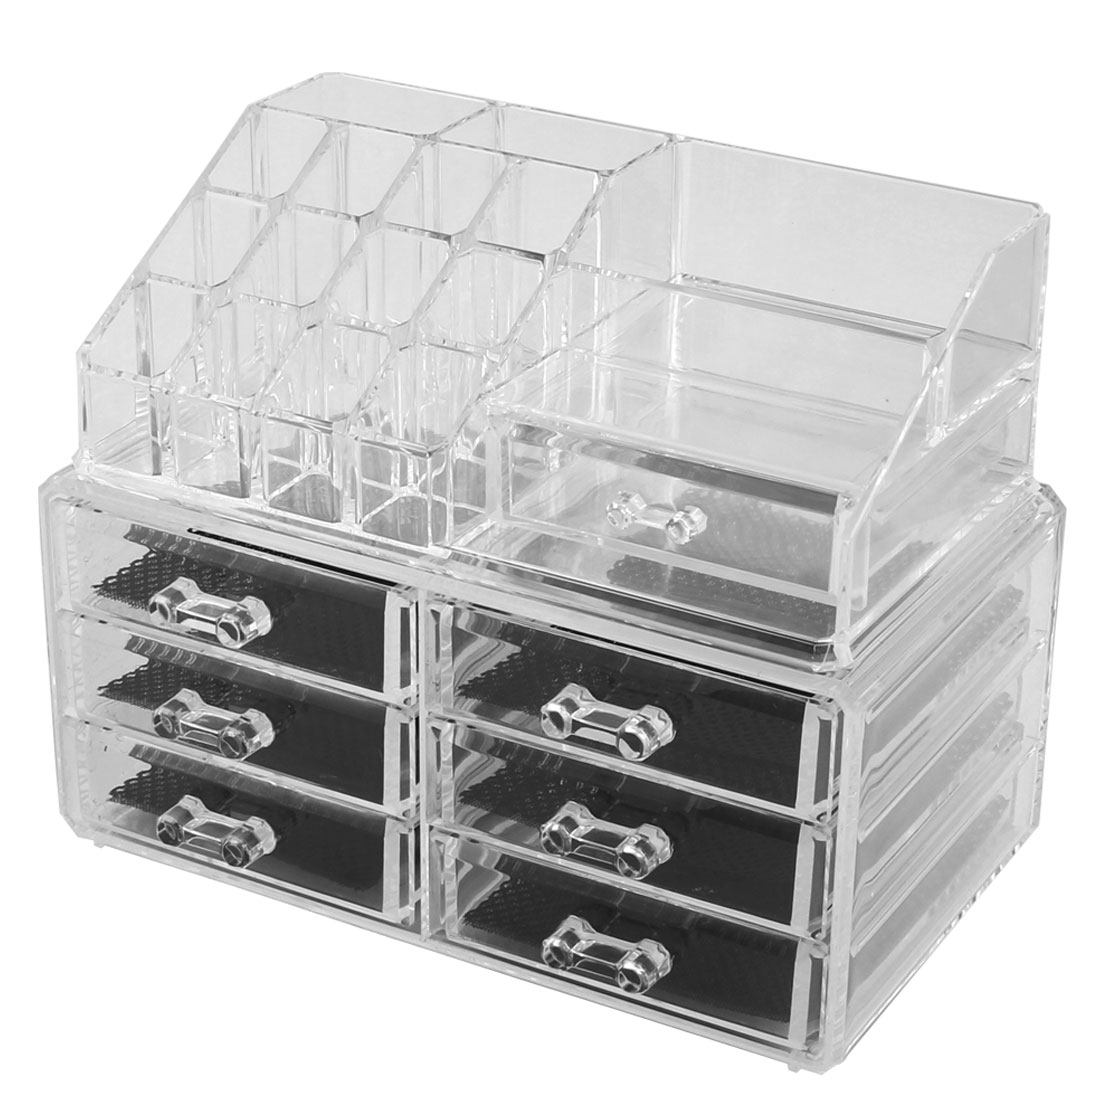 Home Acrylic Multilayers Jewelry Makeup Storage Organizer Container Box Set 2 in 1